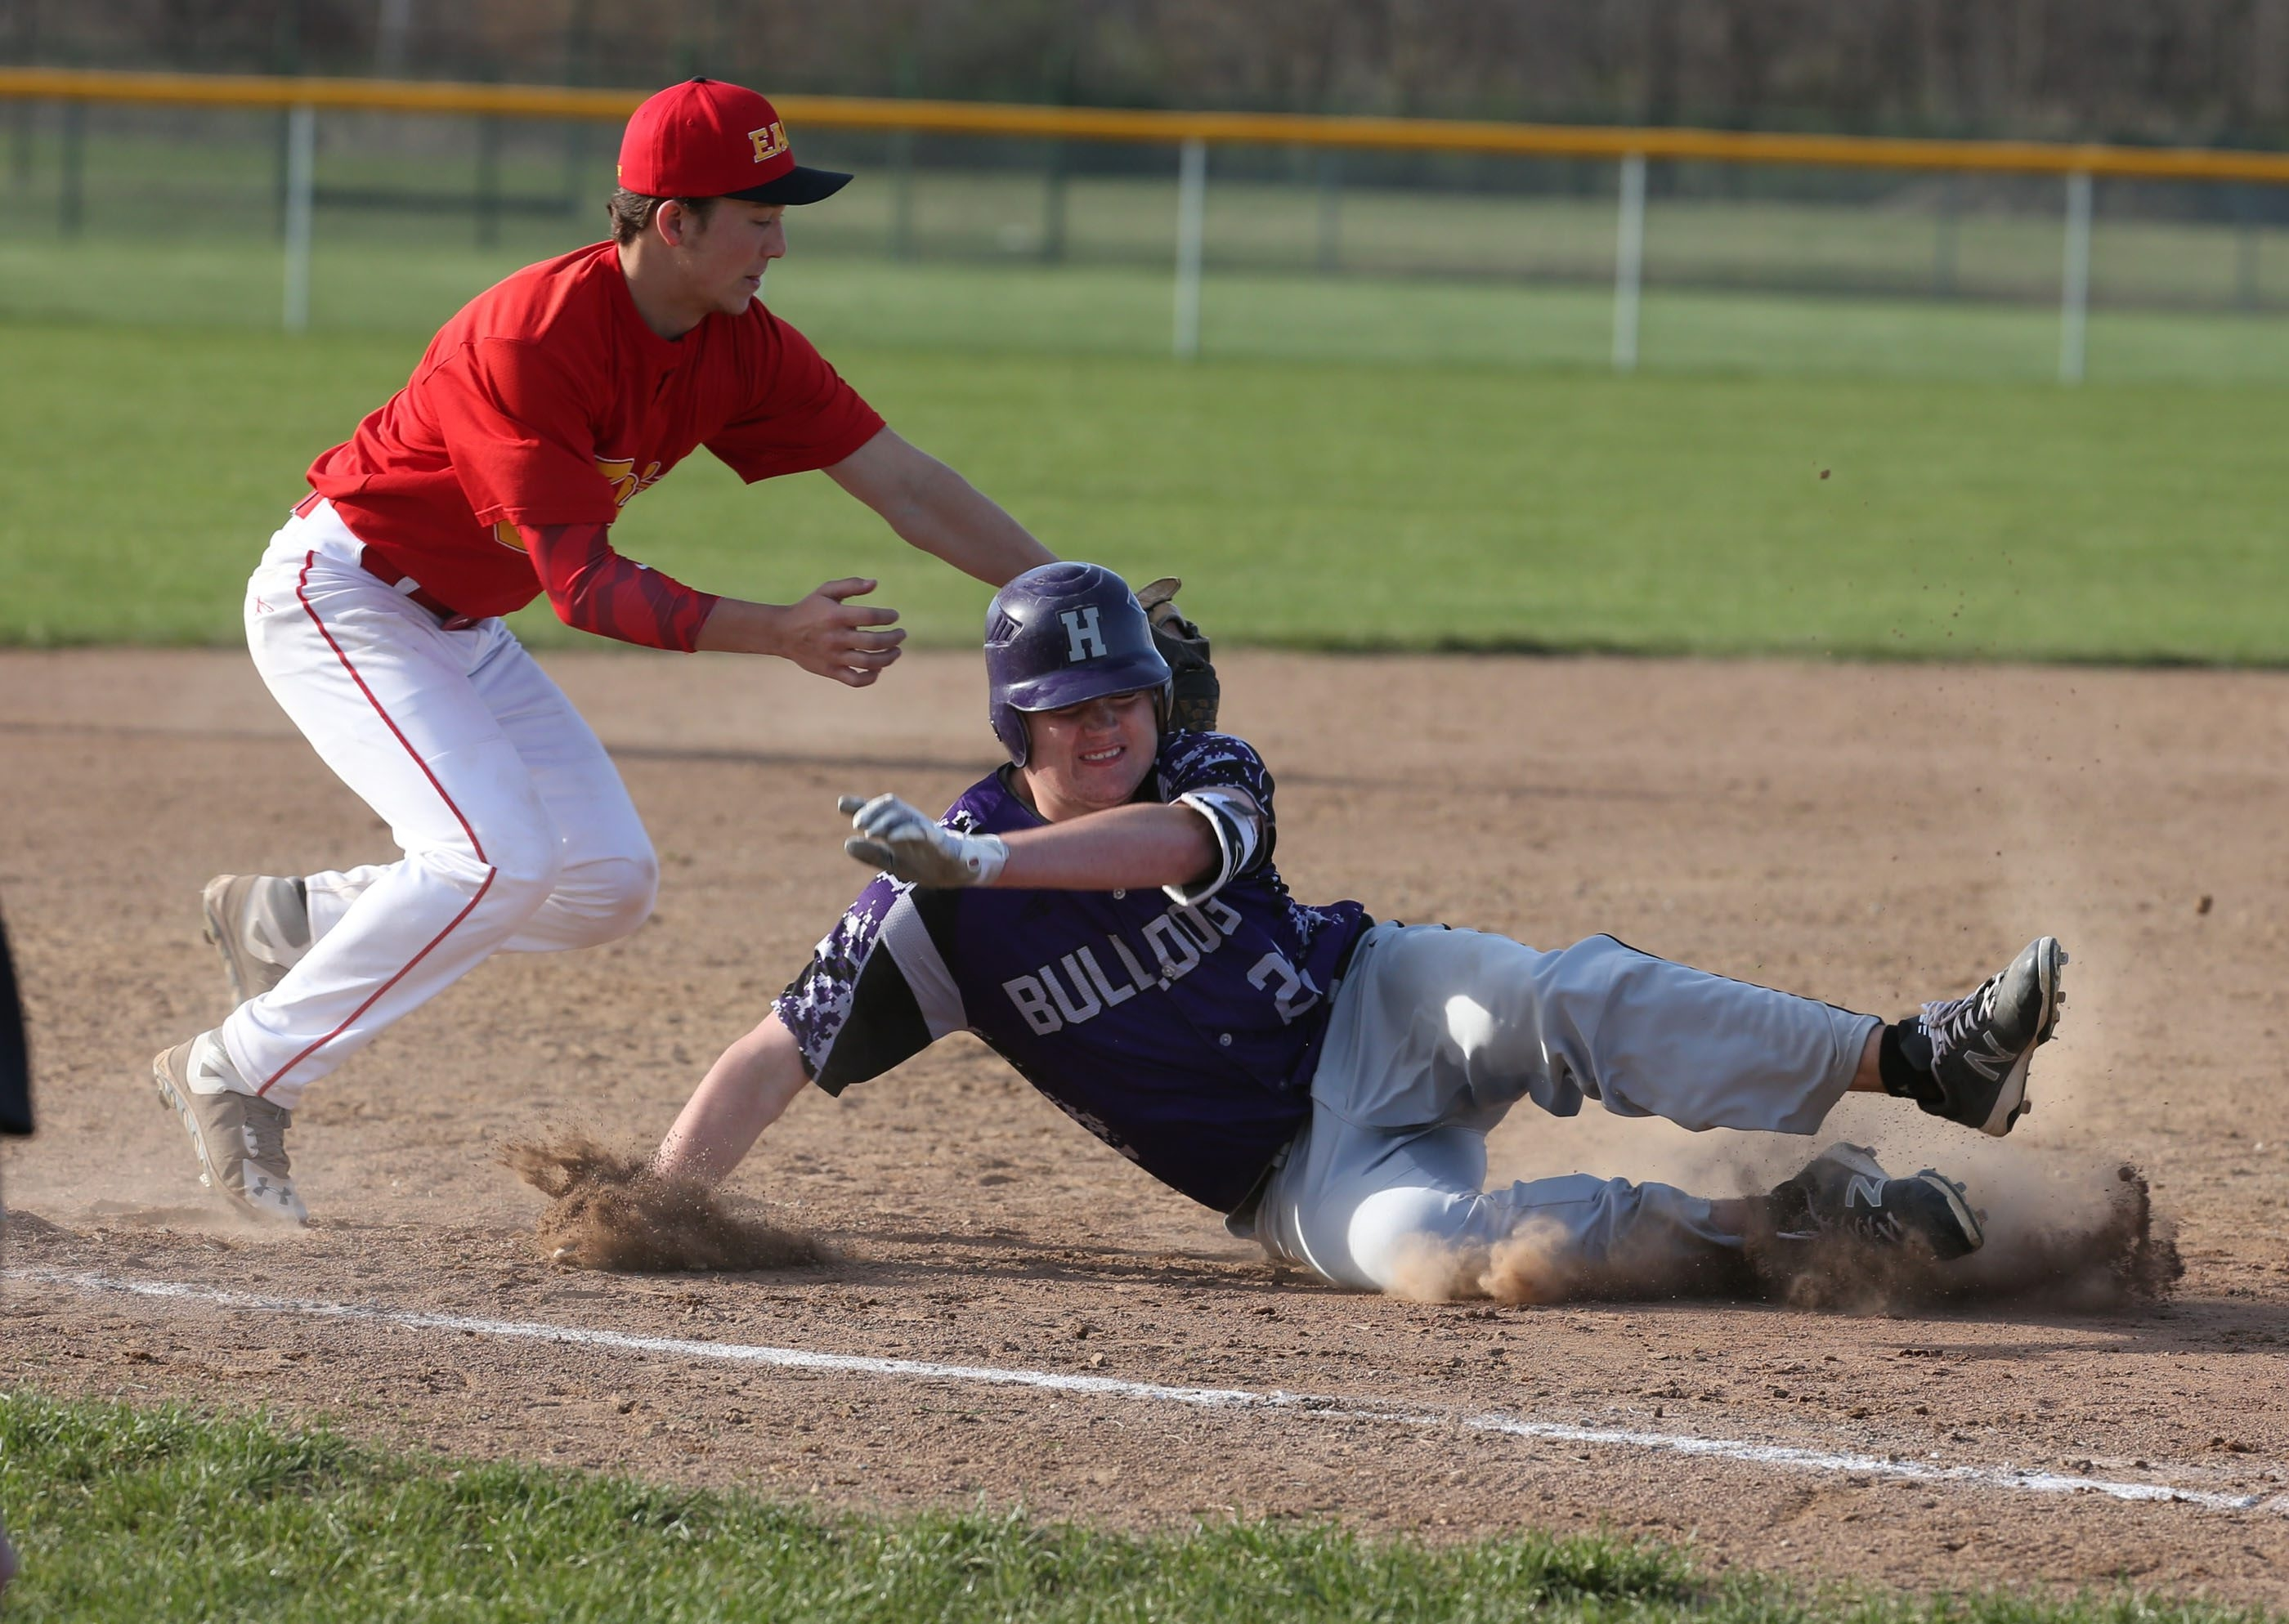 Hamburg's Shawn Filas slides safely into third base on a steal against Williamsville East's Ryan Foster on Tuesday in Hamburg.